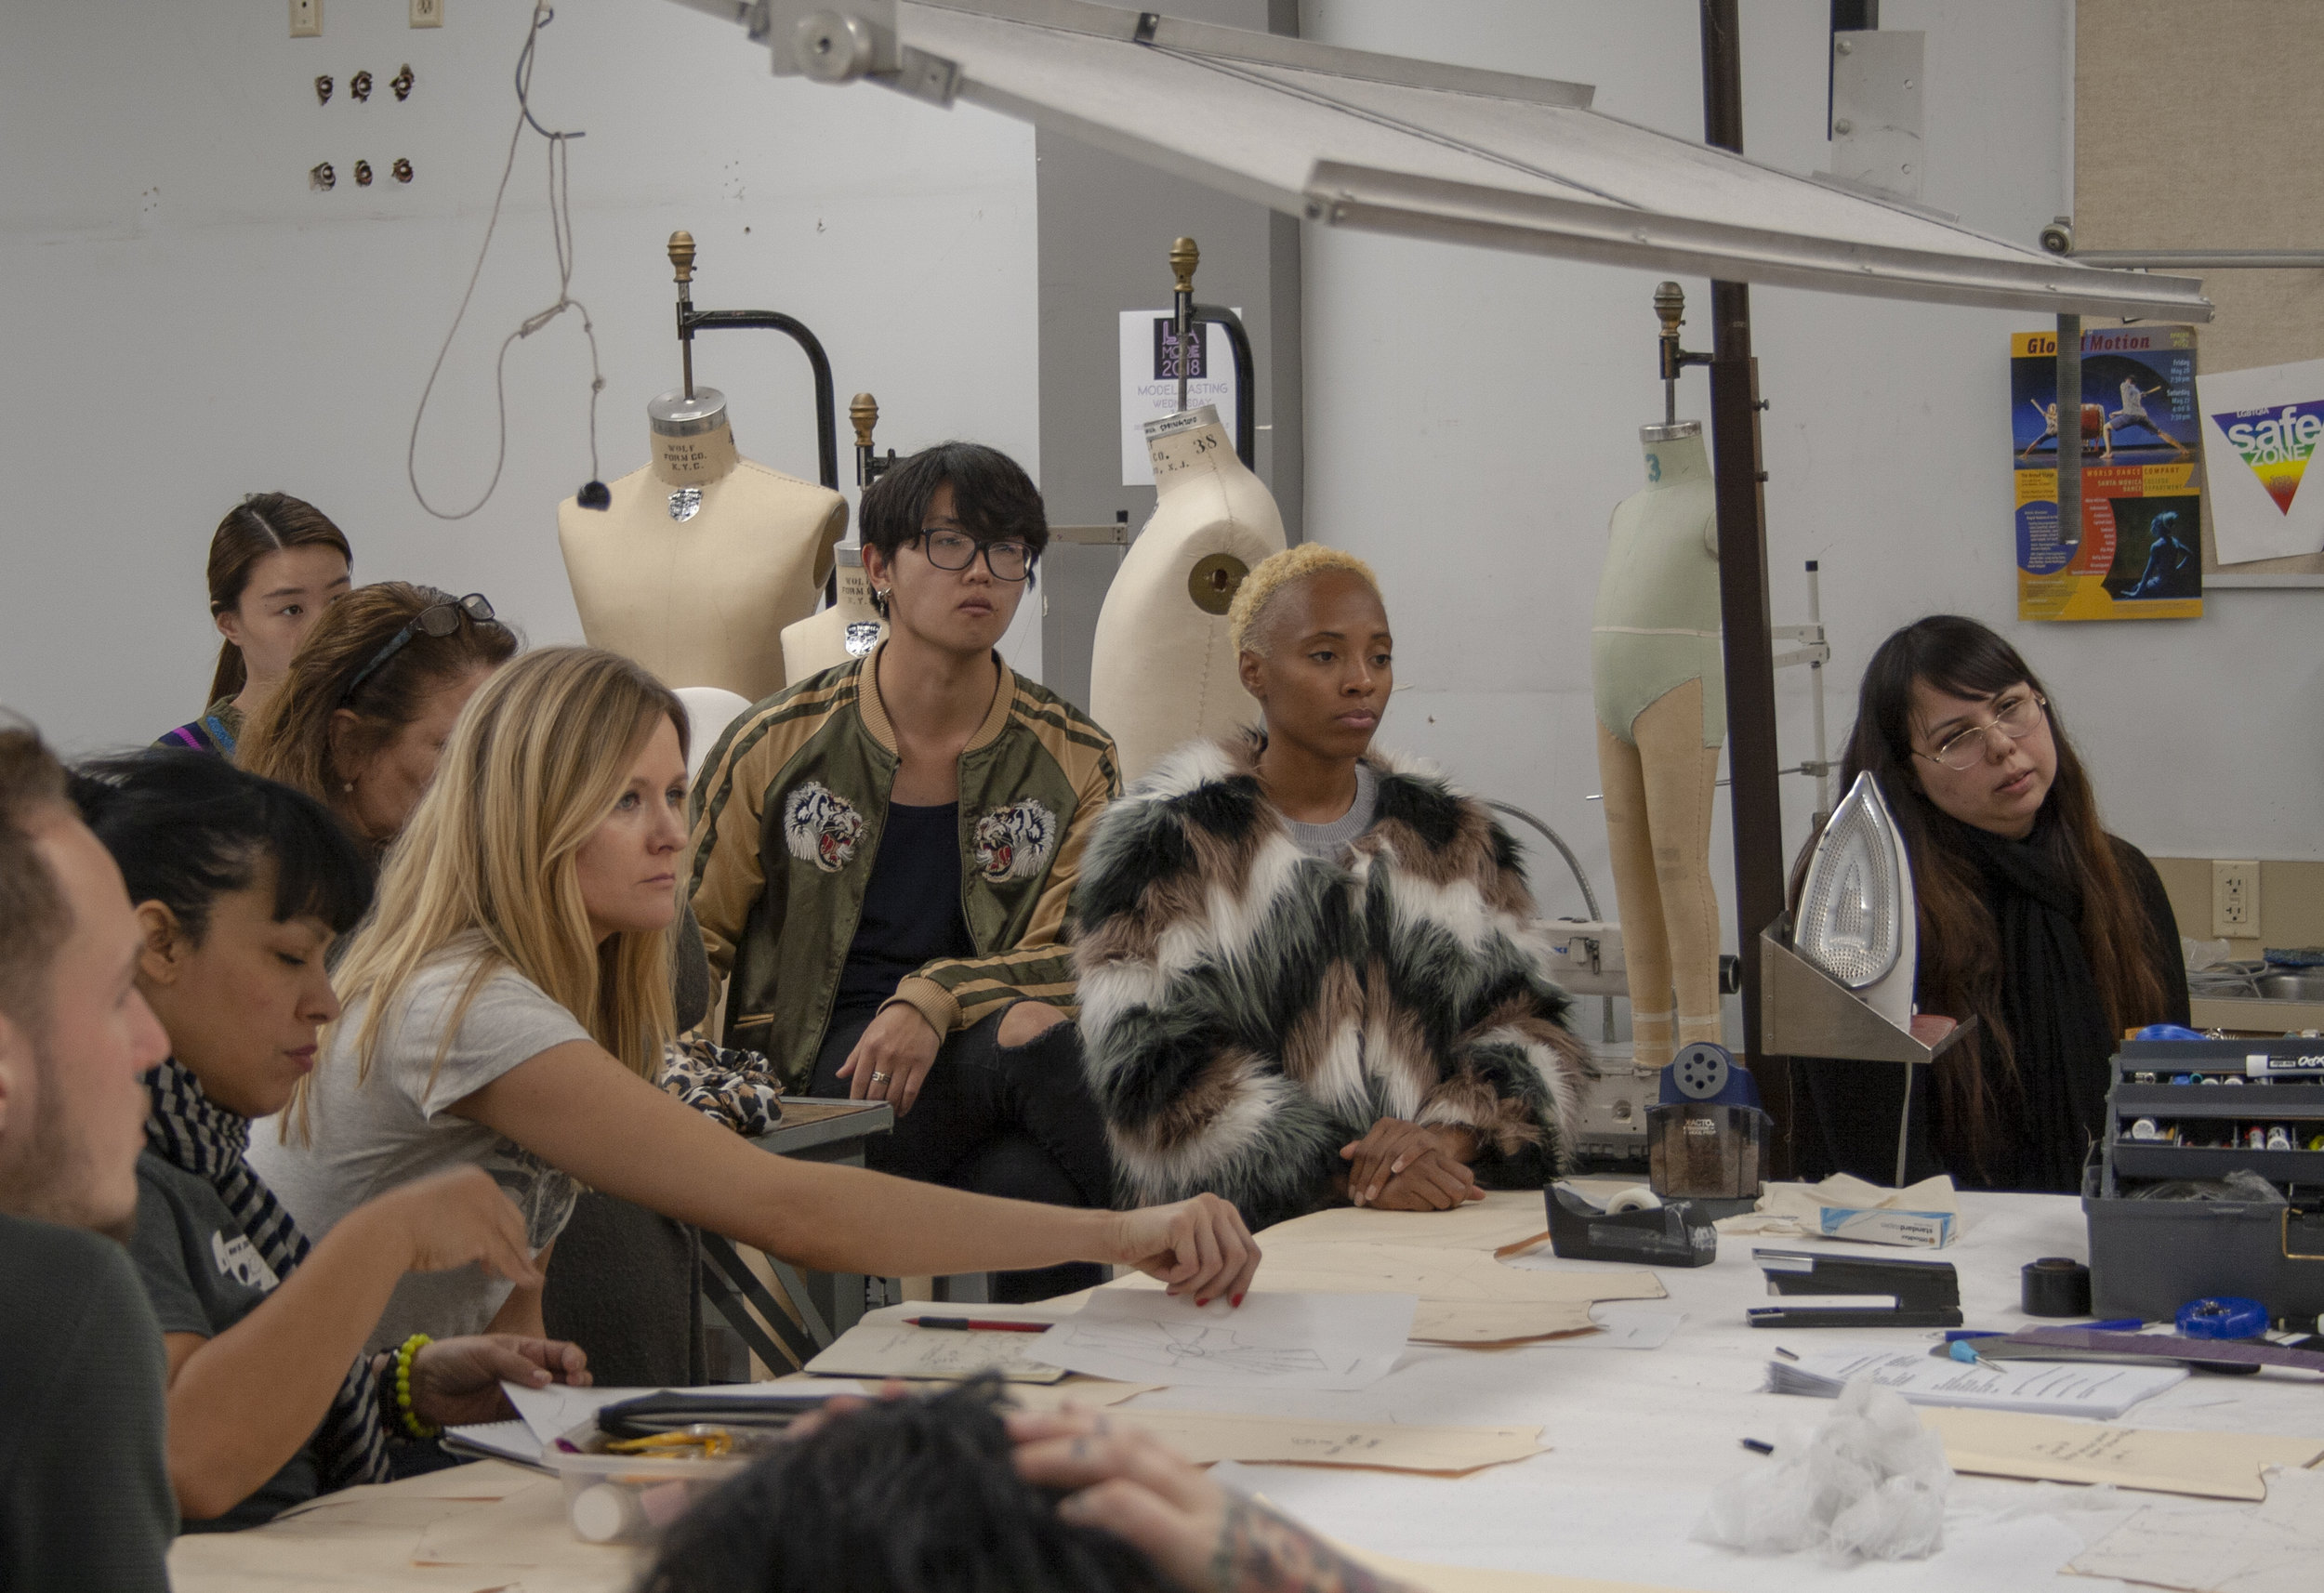 On Feburary 22, 2019 within the Fashion Department in Santa Monica College (SMC) where Porscha Woodard learns, and works on the basics of tracing. Professor Sofi Khachmanyan teaches the class Fashion 6A, where she helps the students on a very close level where they can ask with freedom if they dont understand. Every question is resolved.